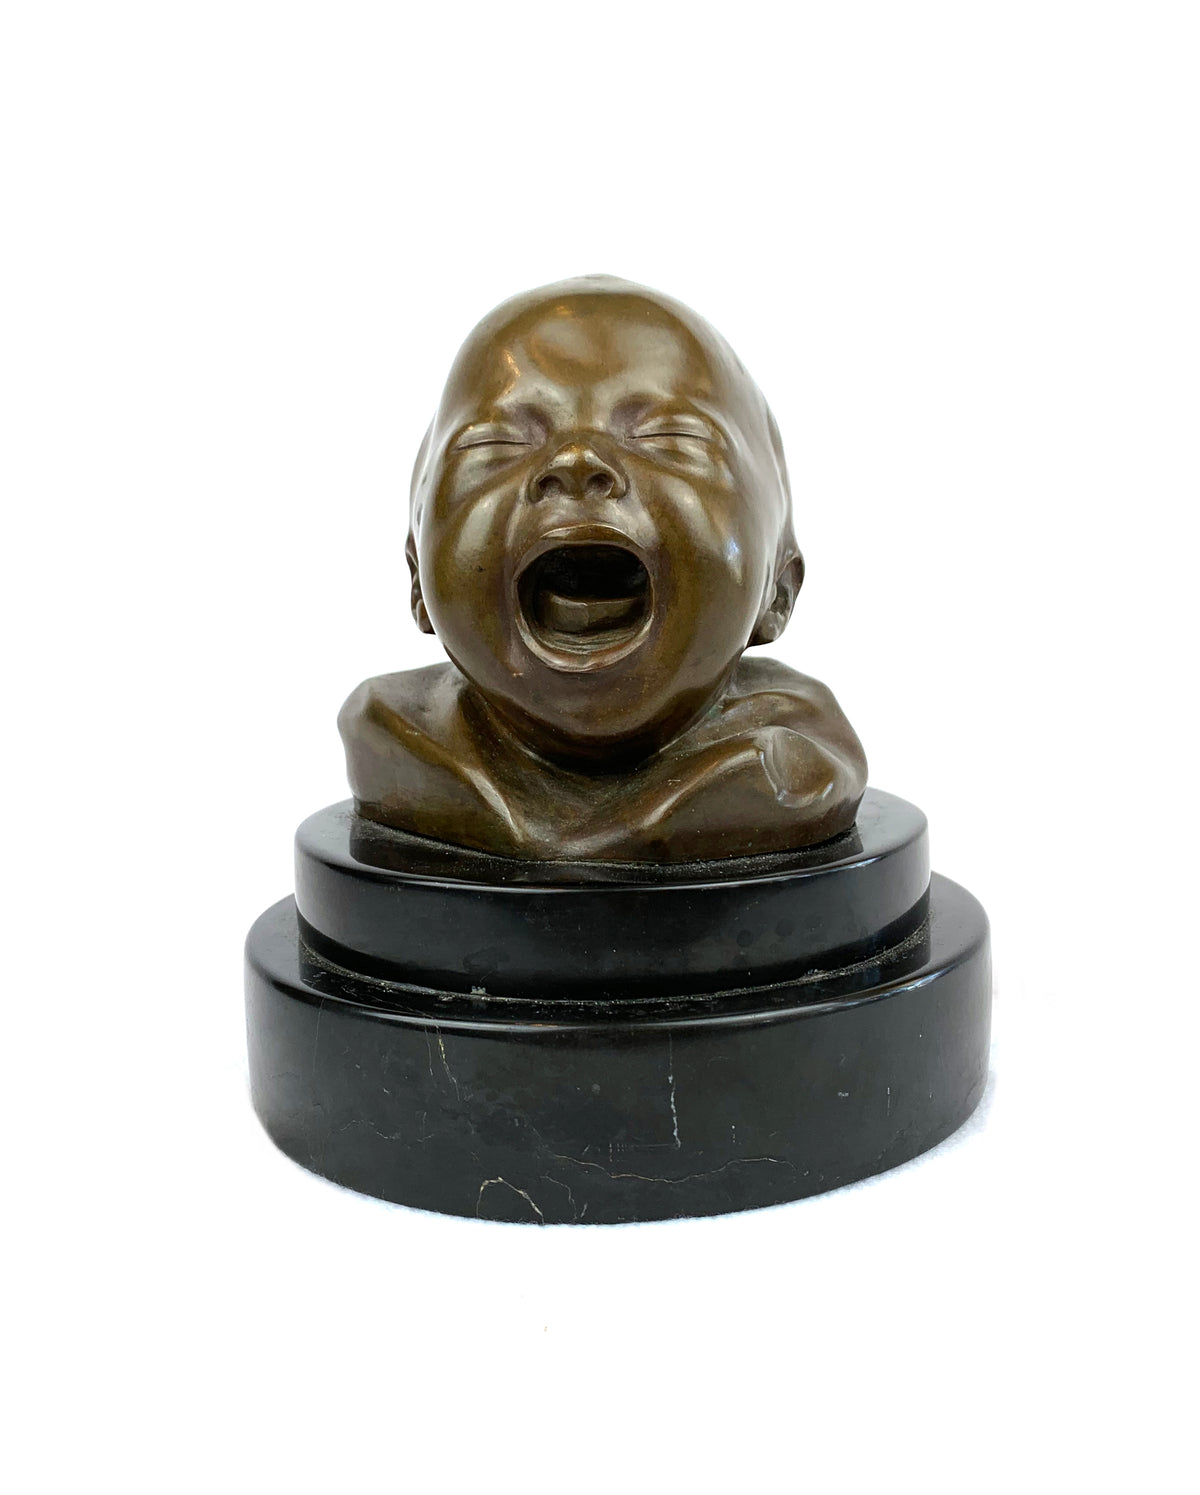 Bronze Head of Crying Baby by Di Balestrieri